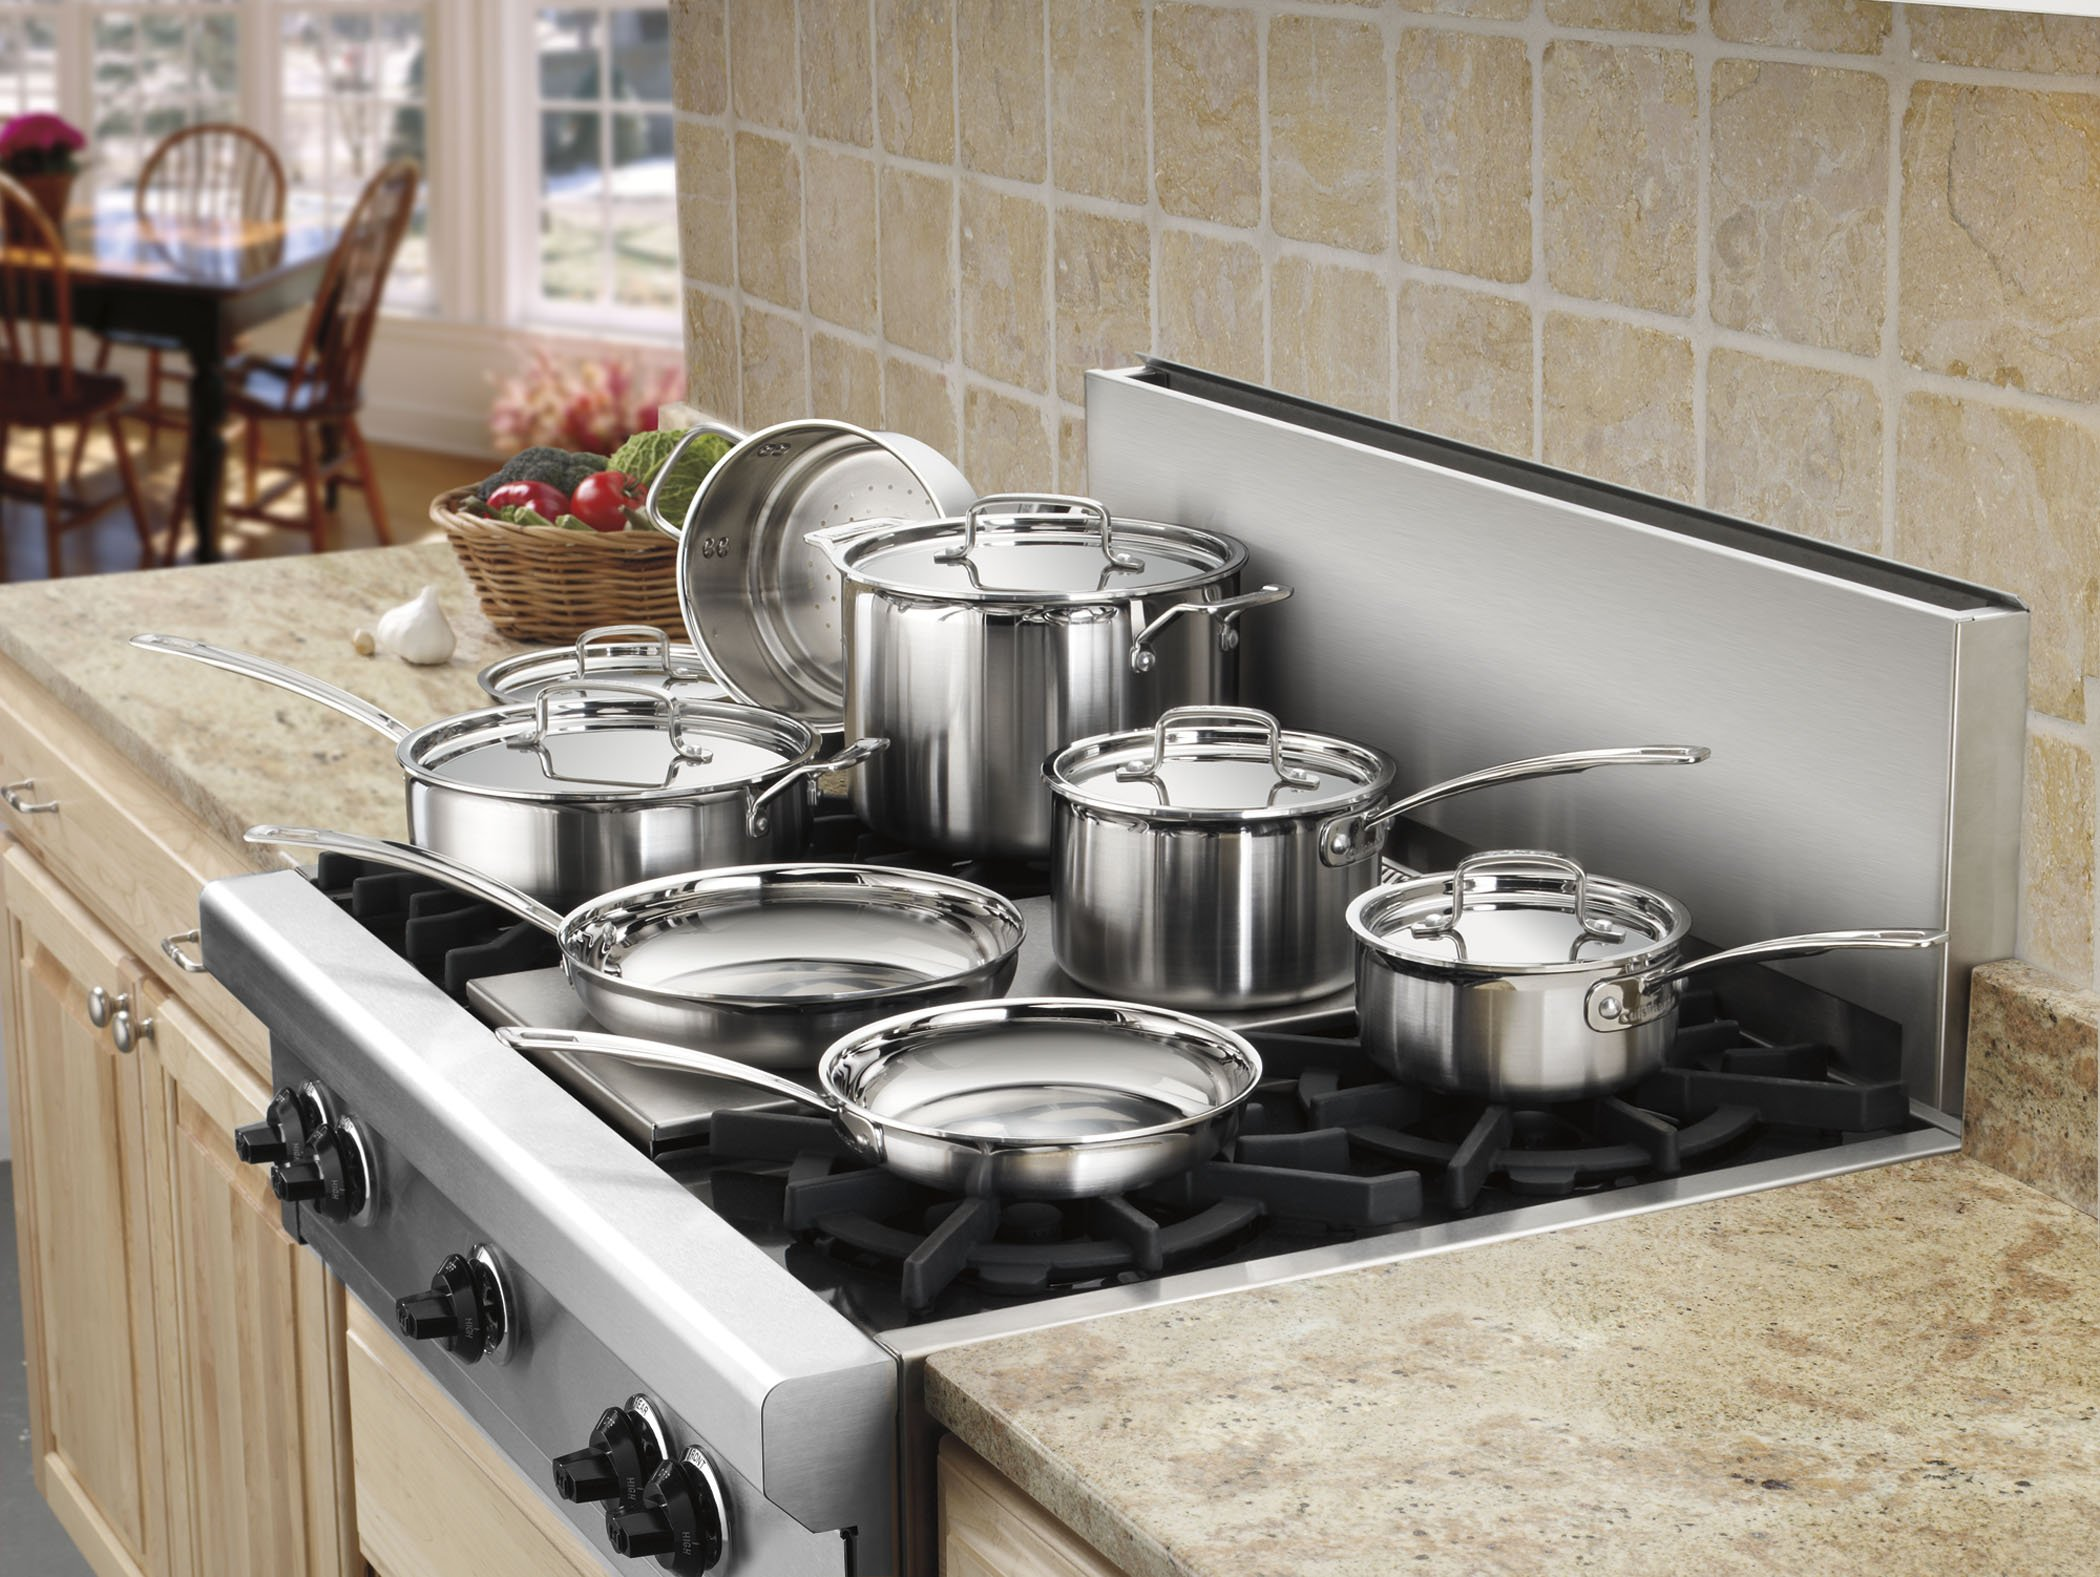 Cuisinart MCP-12N Multiclad Pro Stainless Steel 12-Piece Cookware Set by Cuisinart (Image #2)